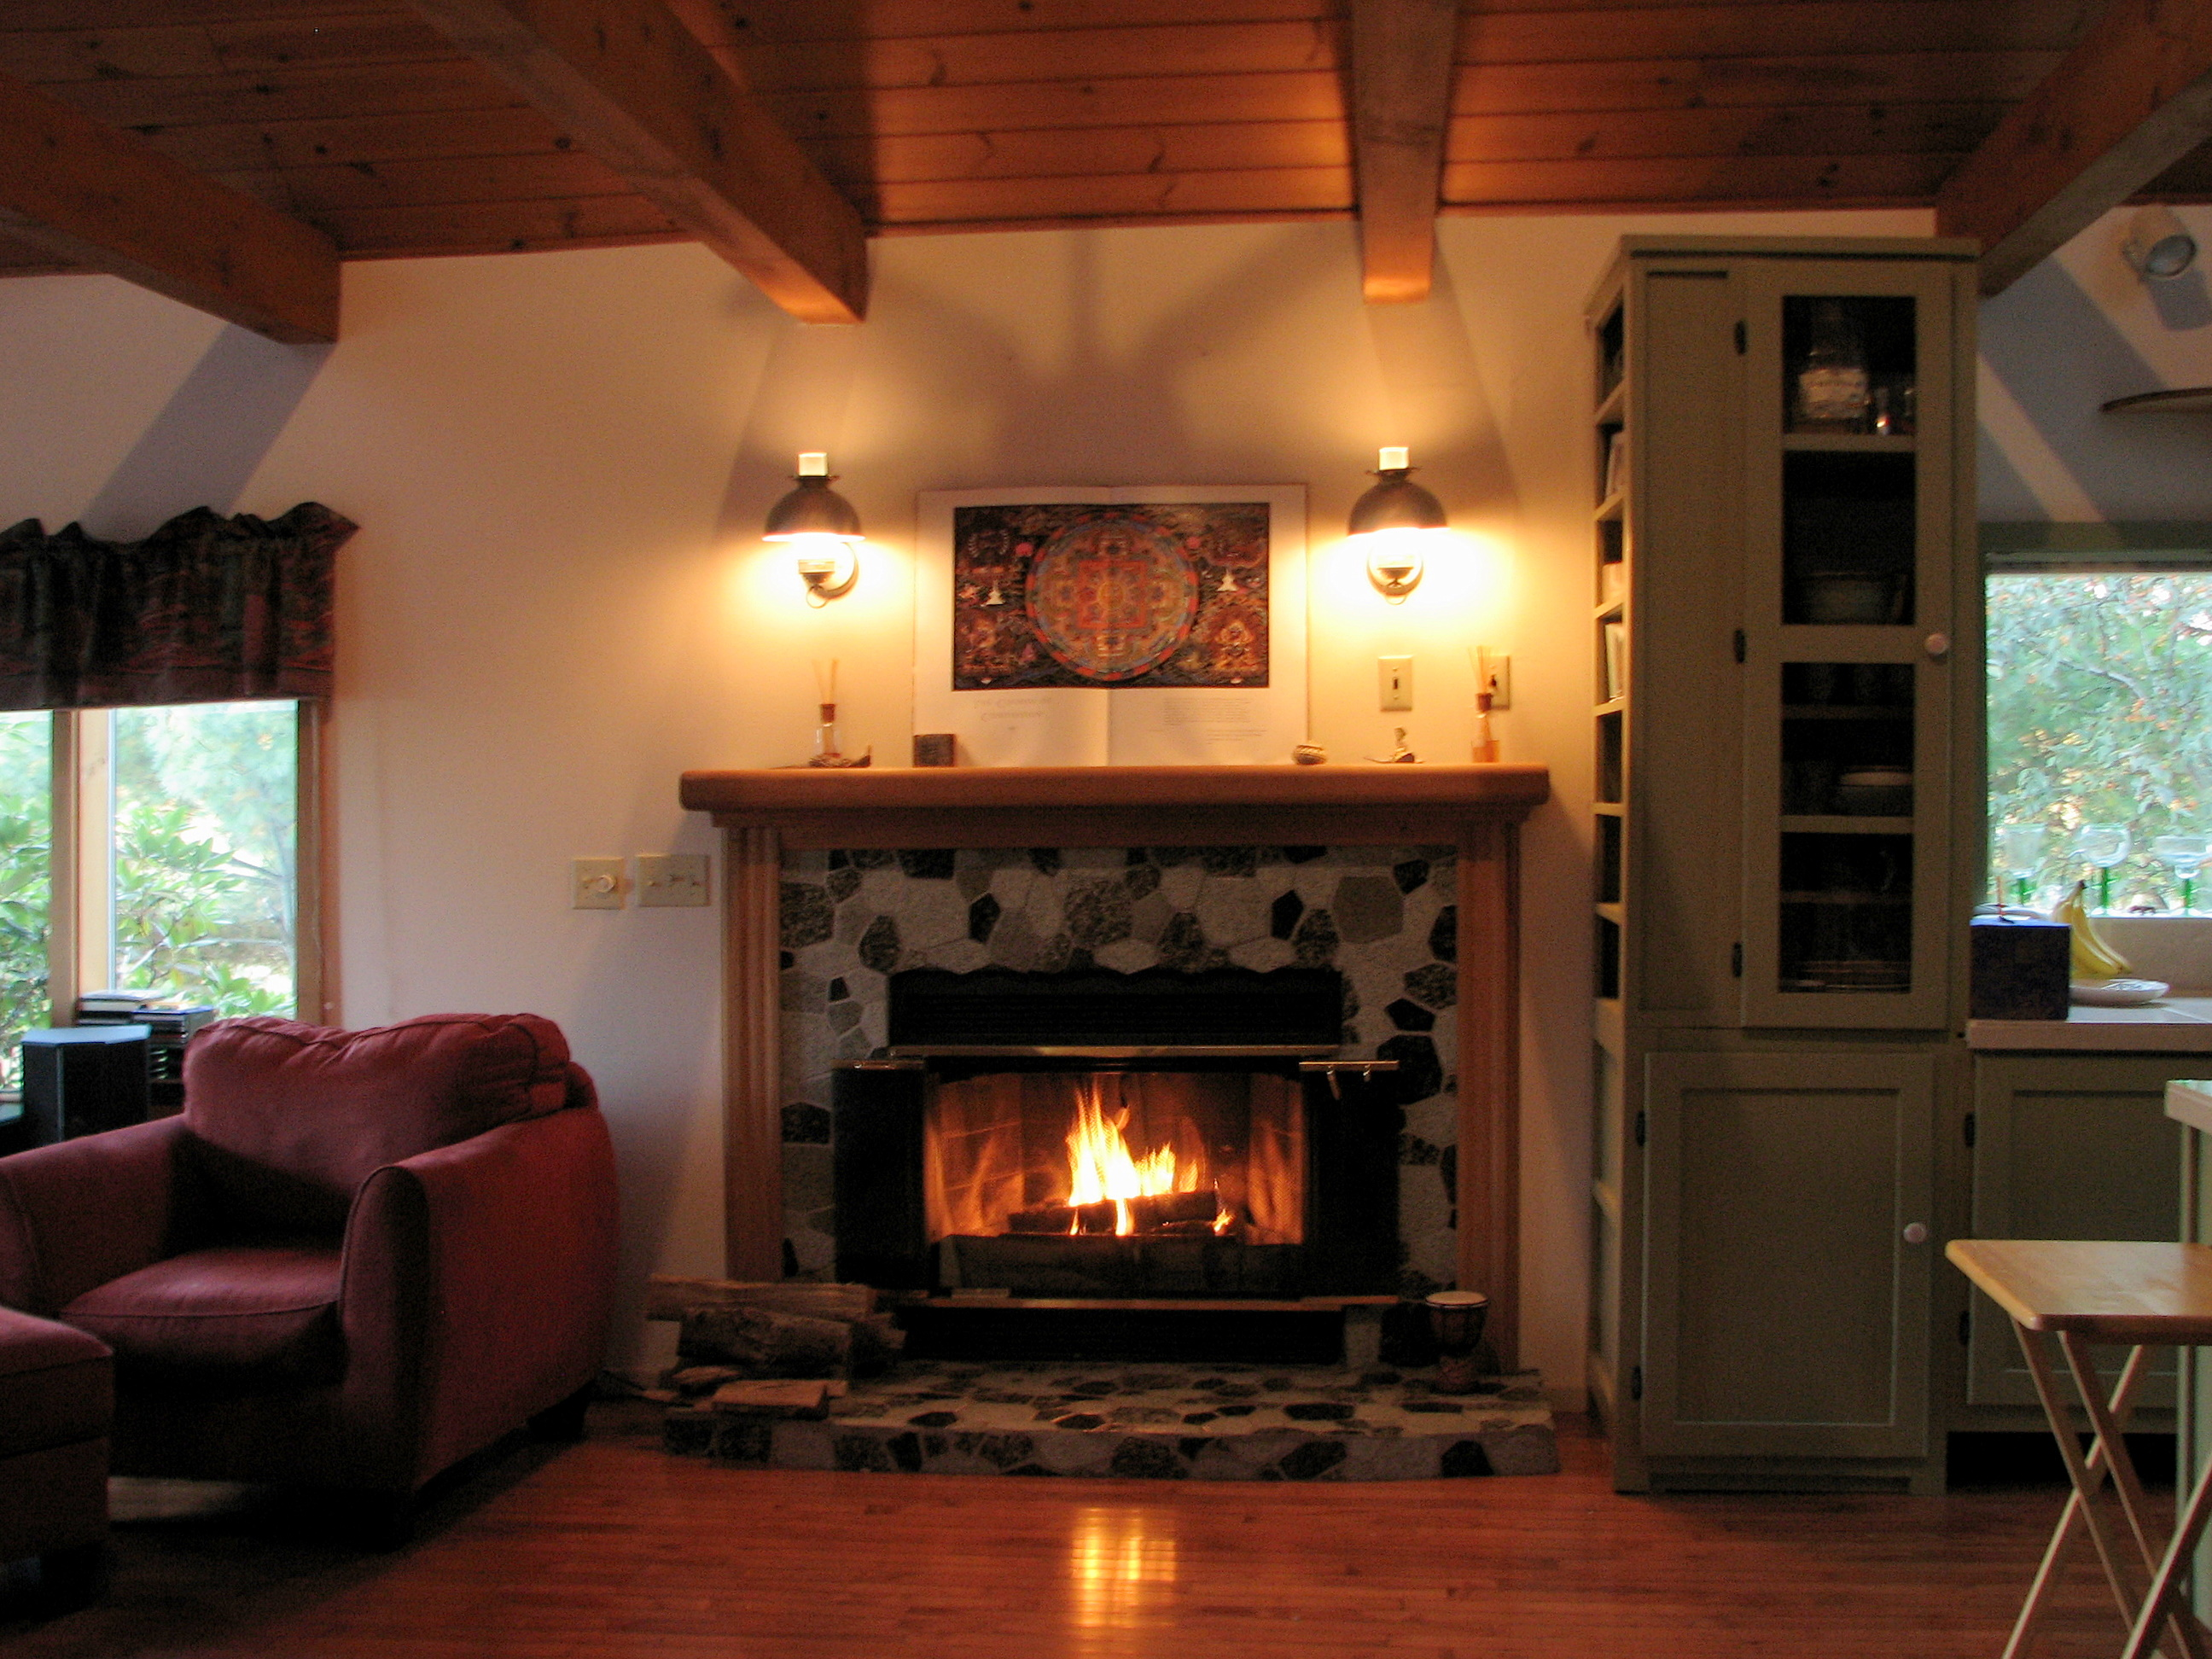 Warm and Comfortable Abode: How to Make Your Home Cozy This Winter ...